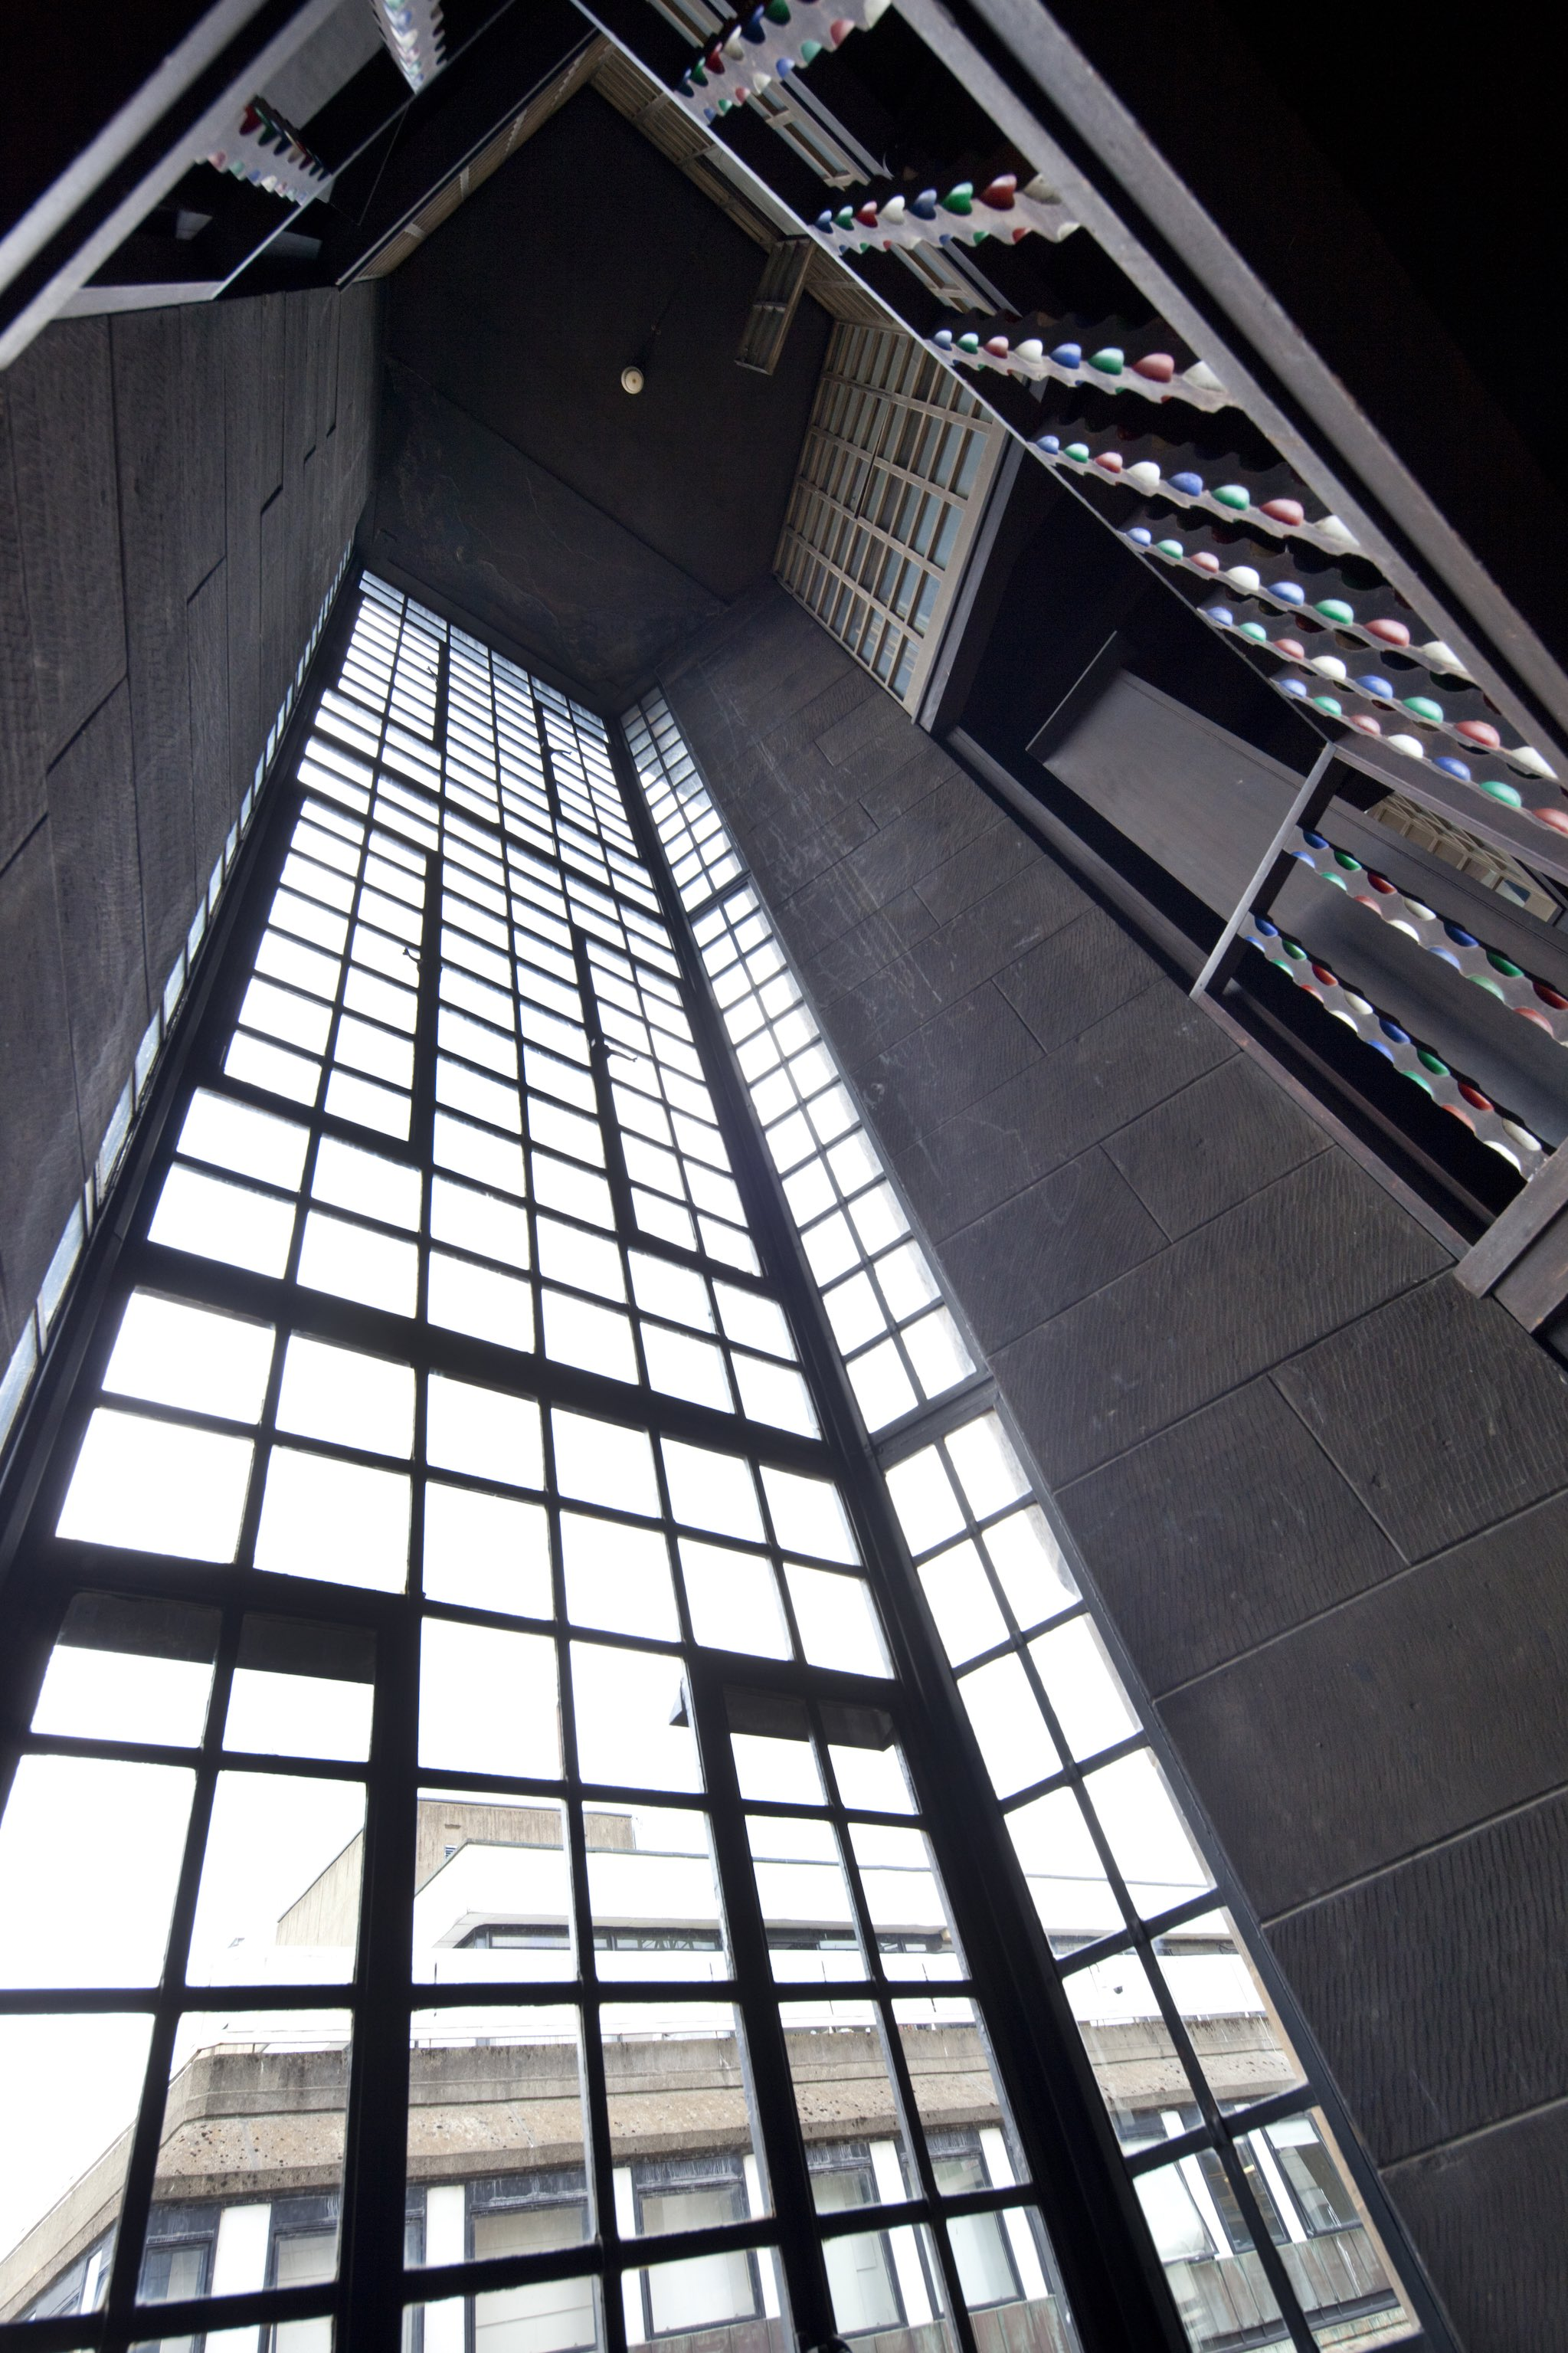 Mackintosh Library windows, Alan McAteer